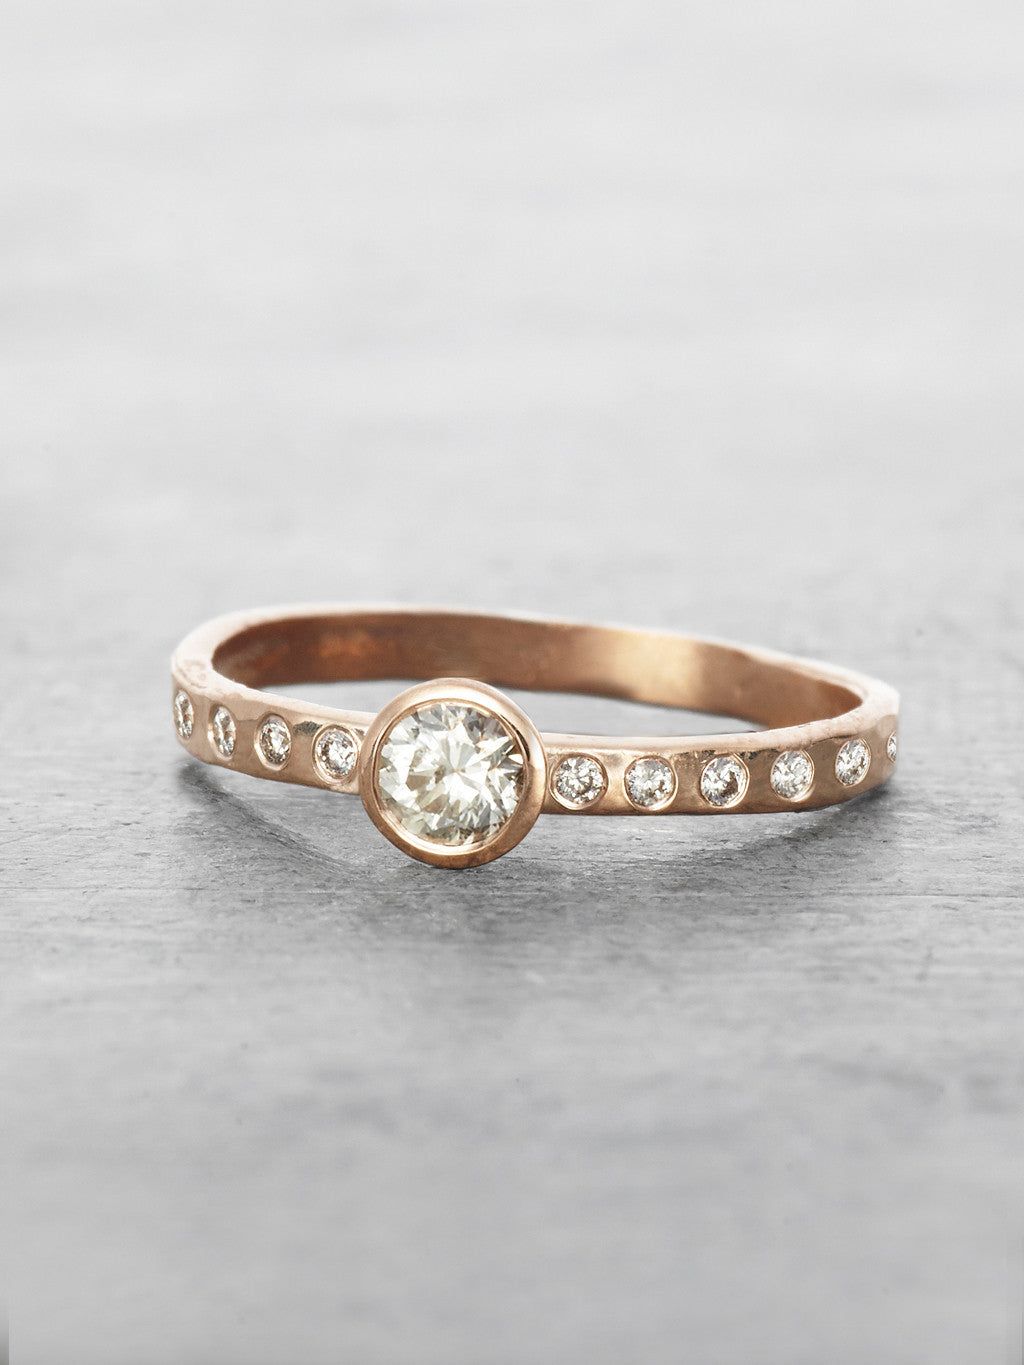 Half of Eternity solitaire Diamond Ring